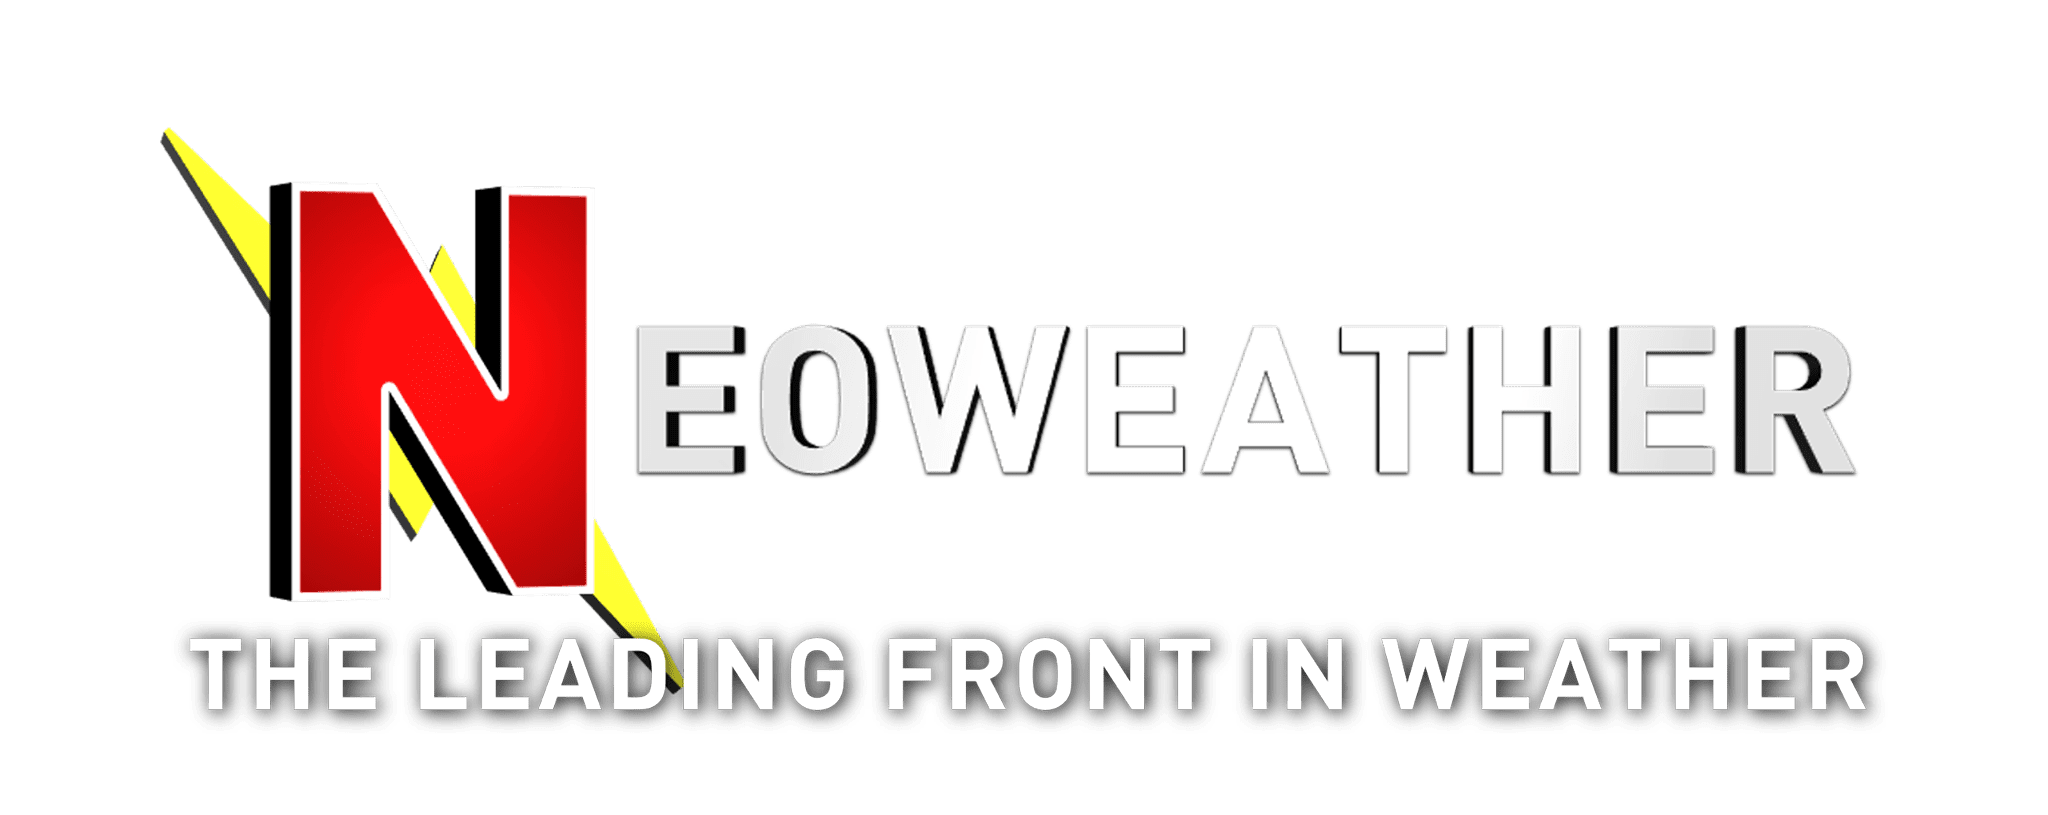 The Leading Front in Weather